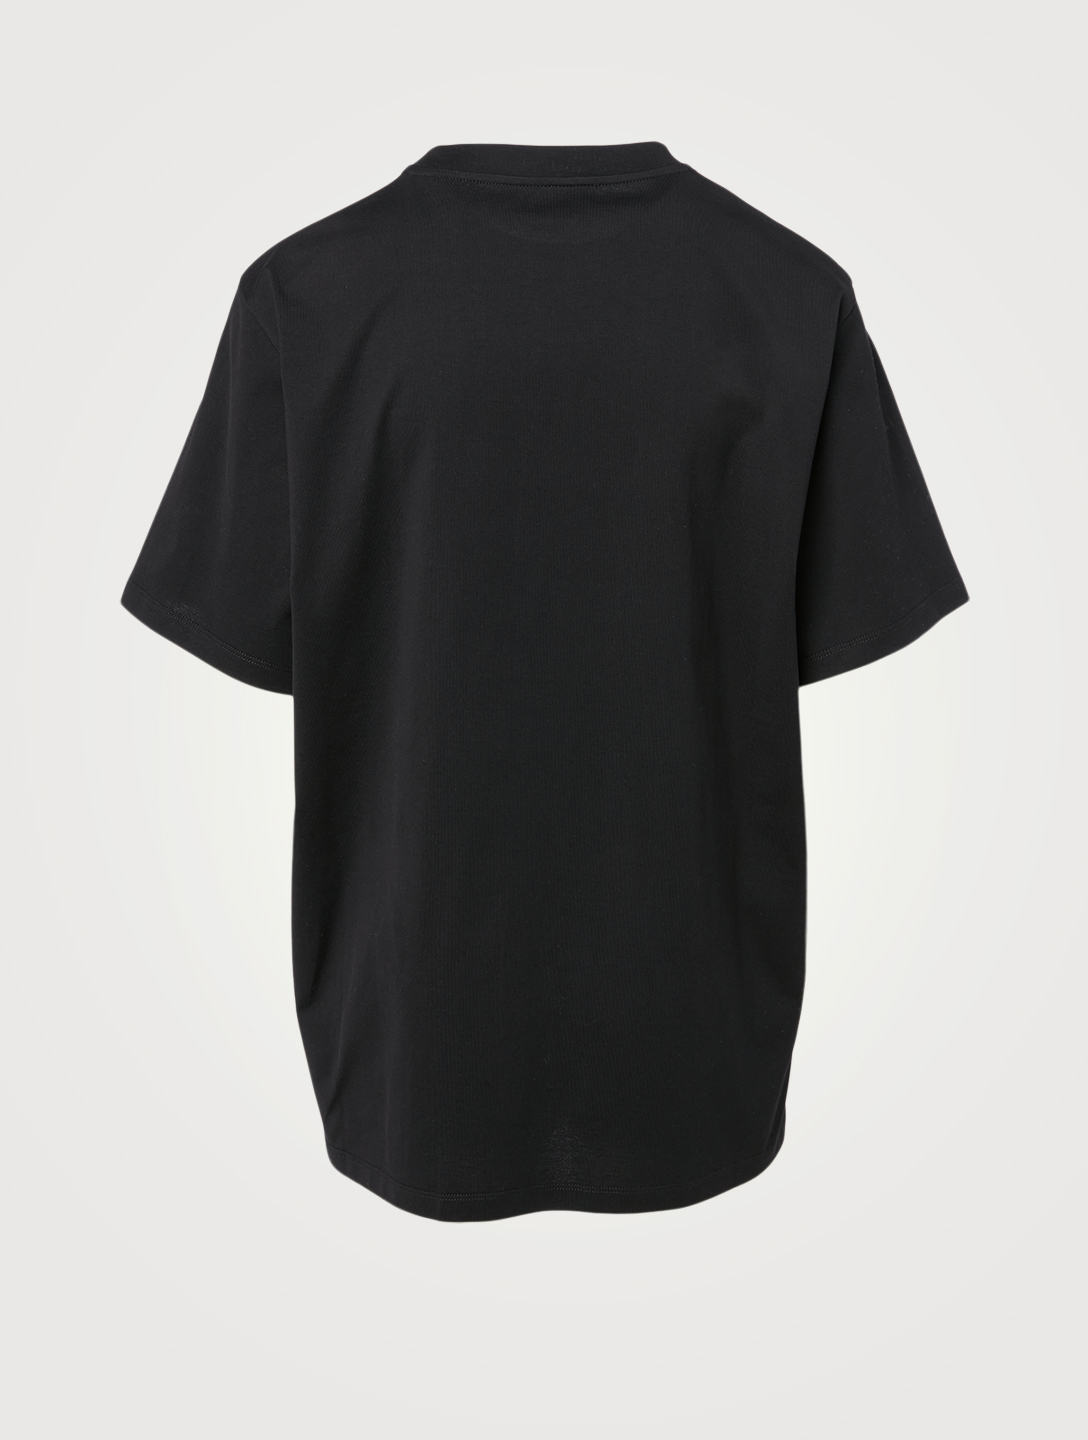 STELLA MCCARTNEY Tee-shirt 23 Old Bond Street Femmes Noir